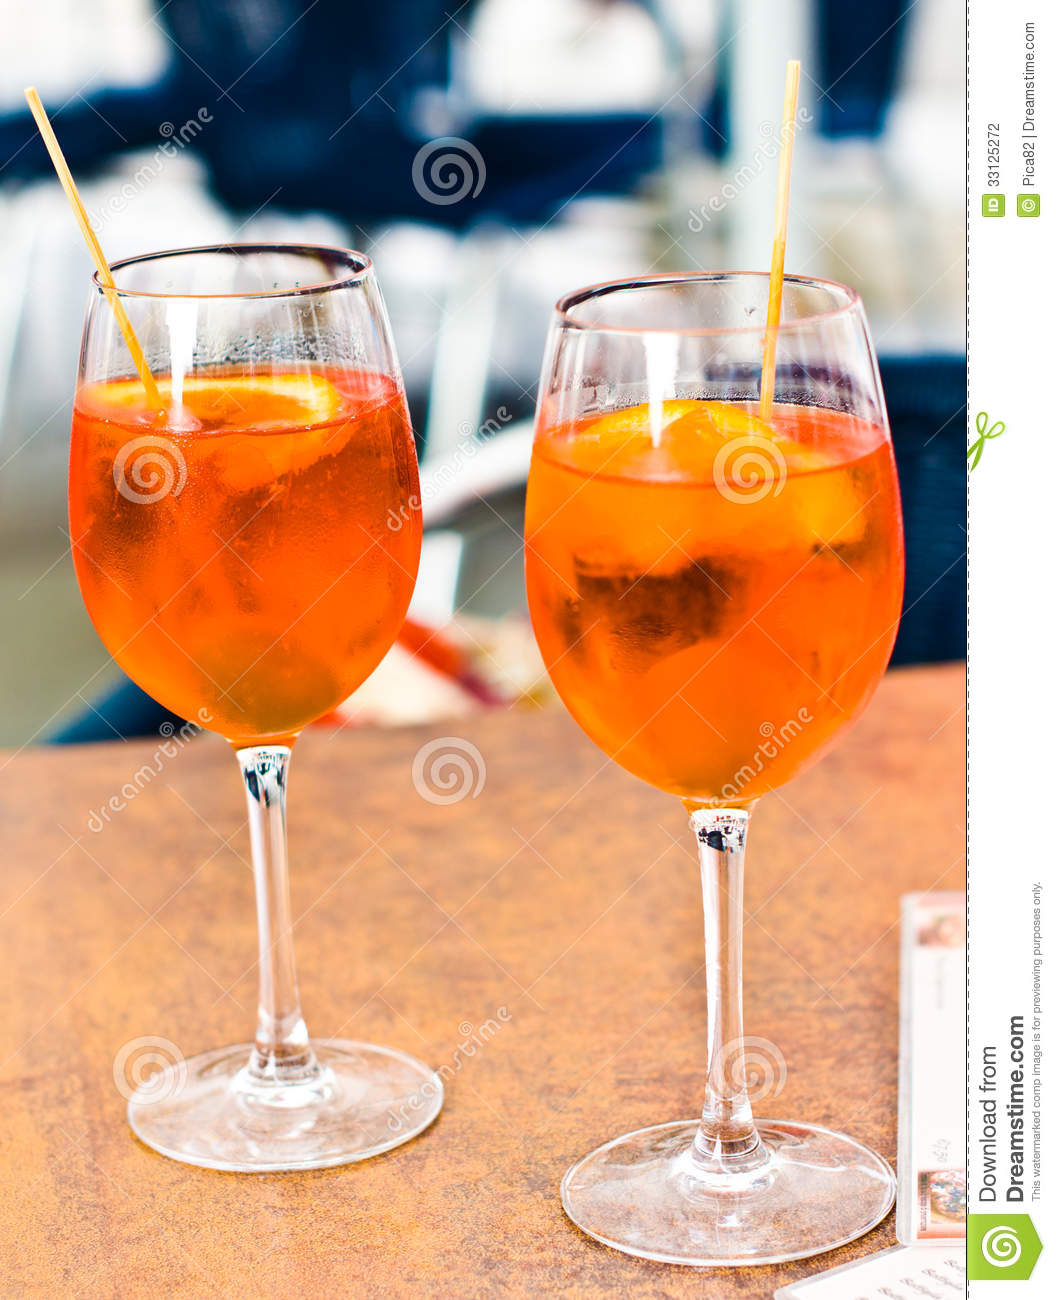 spritz aperitif stock photography image 33125272. Black Bedroom Furniture Sets. Home Design Ideas